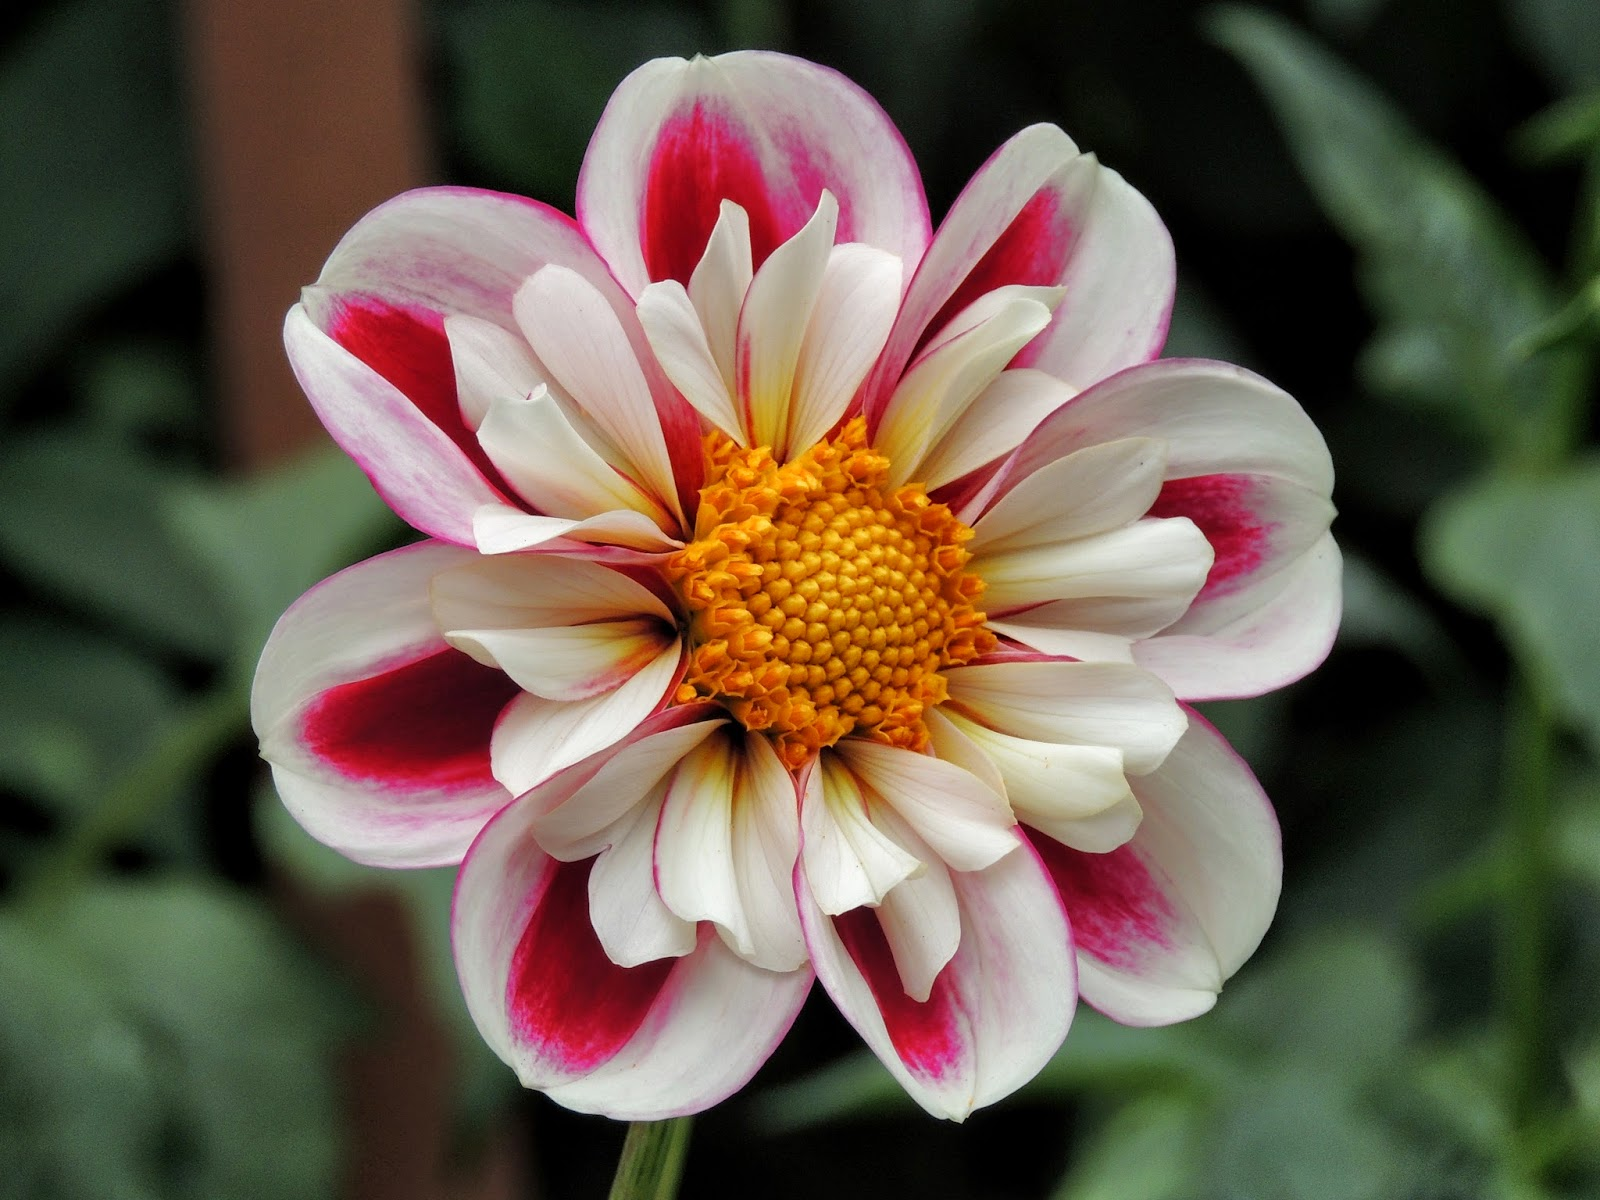 Princess haiku december 2014 this is one of the flowers that i captured in the dahlia garden in golden gate park san francisco this year the garden was a gift from the san francisco izmirmasajfo Image collections